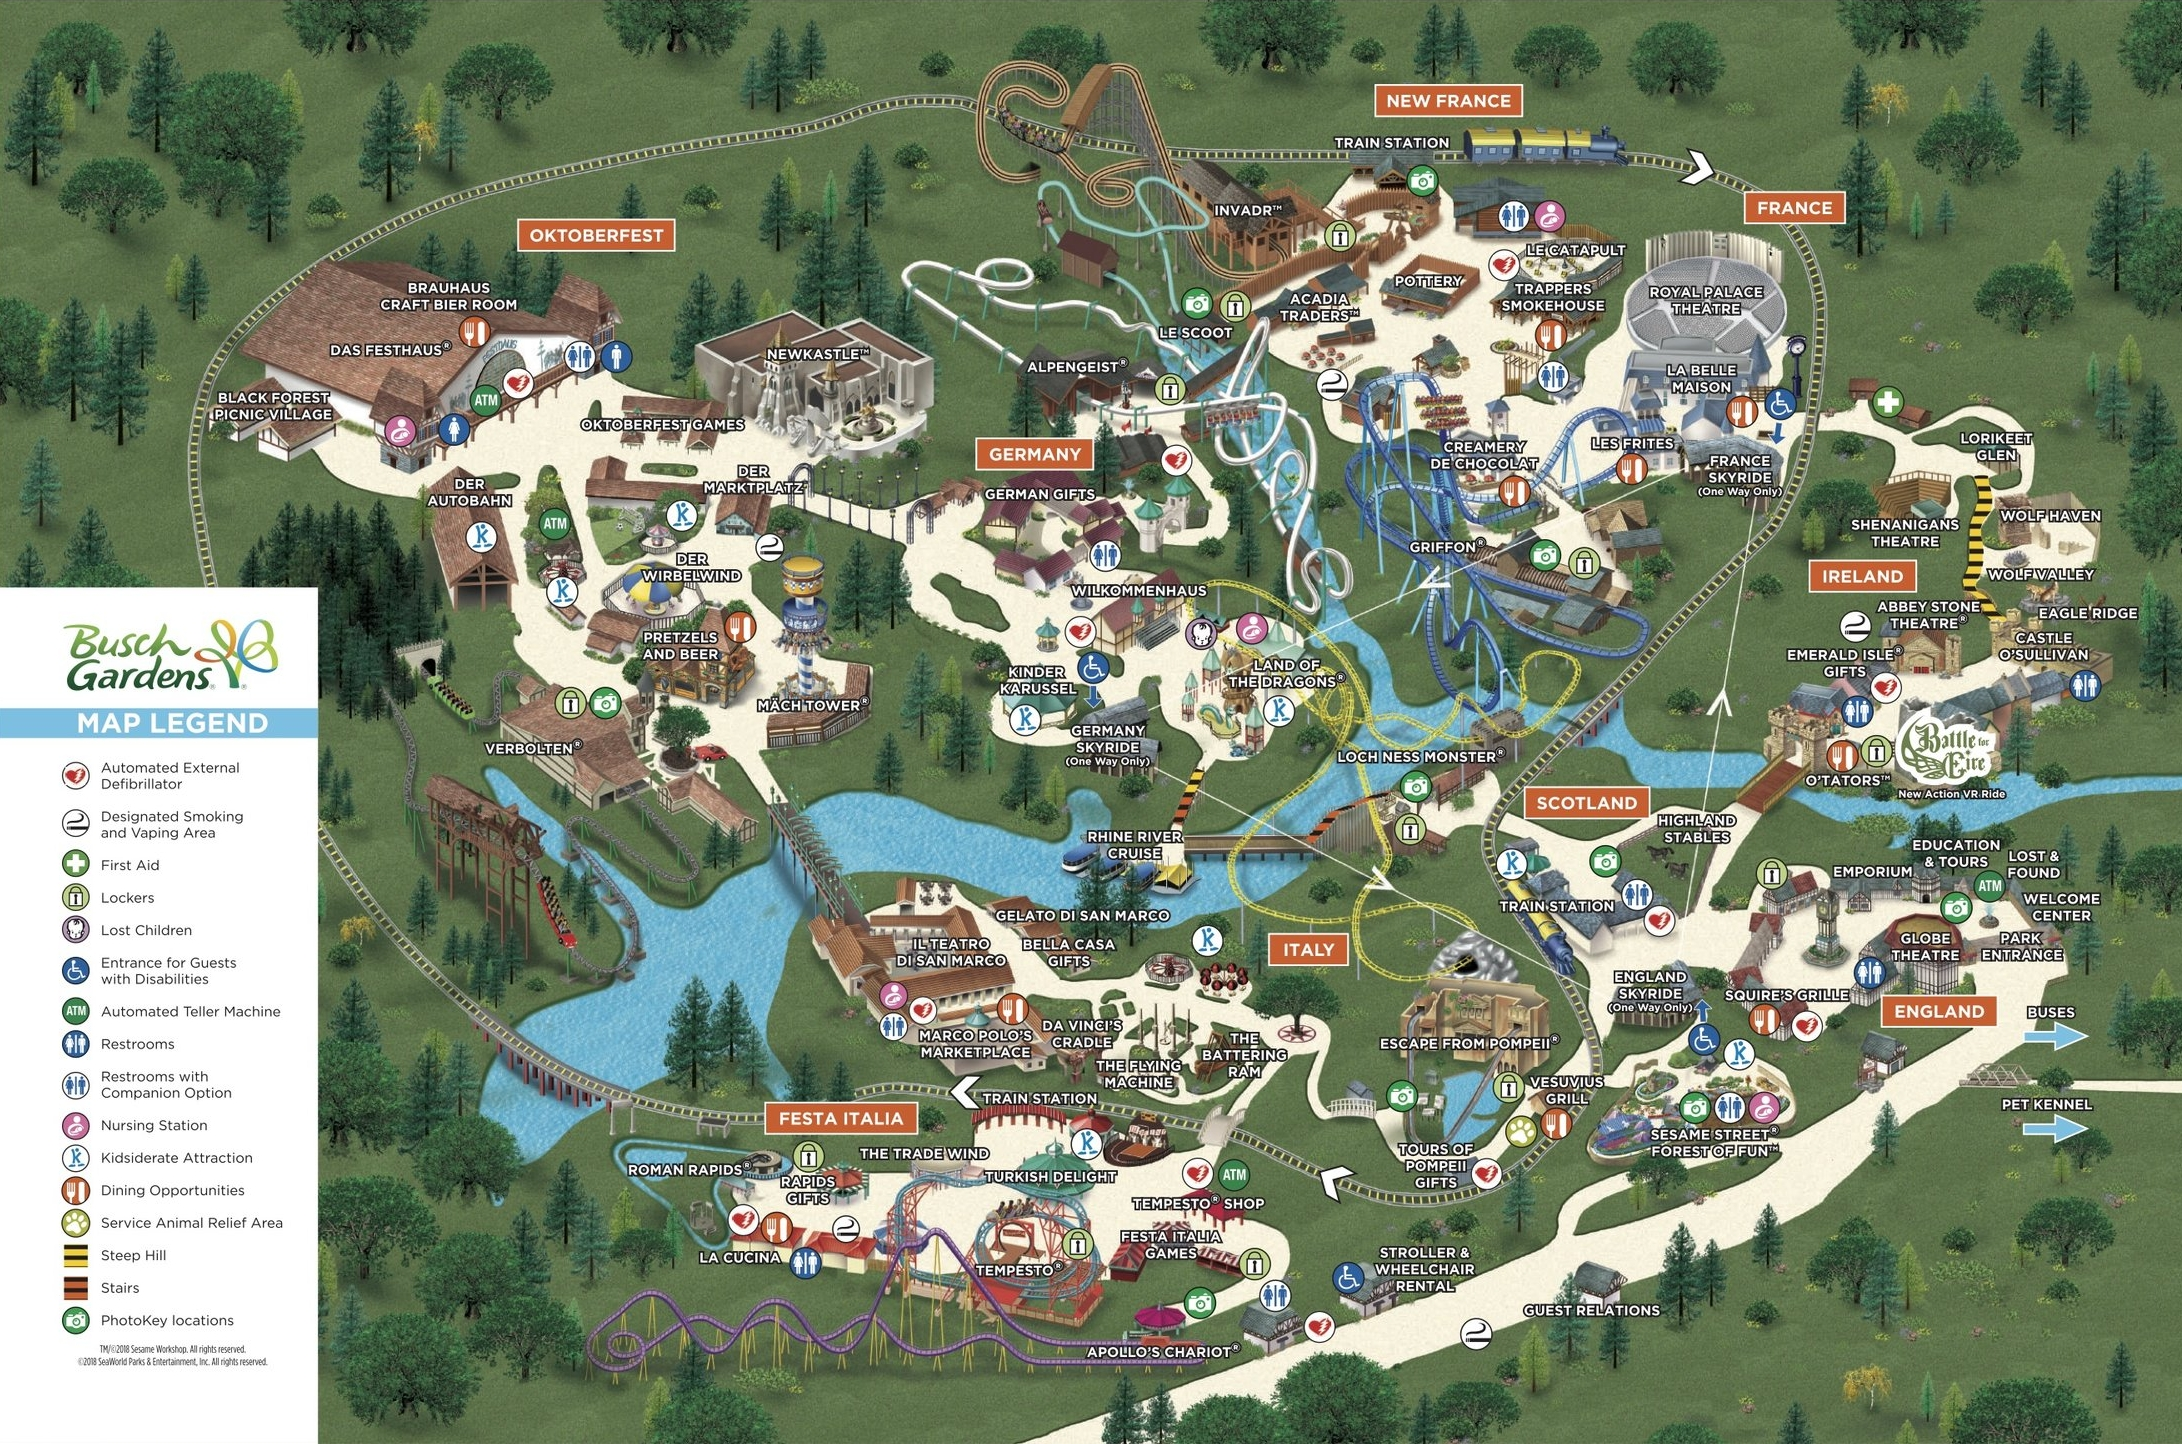 Busch Gardens Williamsburg - Best Rides & Attractions — Rent Charter on map of charleston, map of fries, map of emerald mound, map of windsor heights, map of the brooklyn, map of west branch, map of cedar, map of university heights, map of firethorne, map of gordonsville, map of brookneal, map of mount weather, map of vassar, map of rockbridge county, map of cole county, map of white city, map of lawrenceburg, map of weatherly, map of providence place, map of james river bridge,